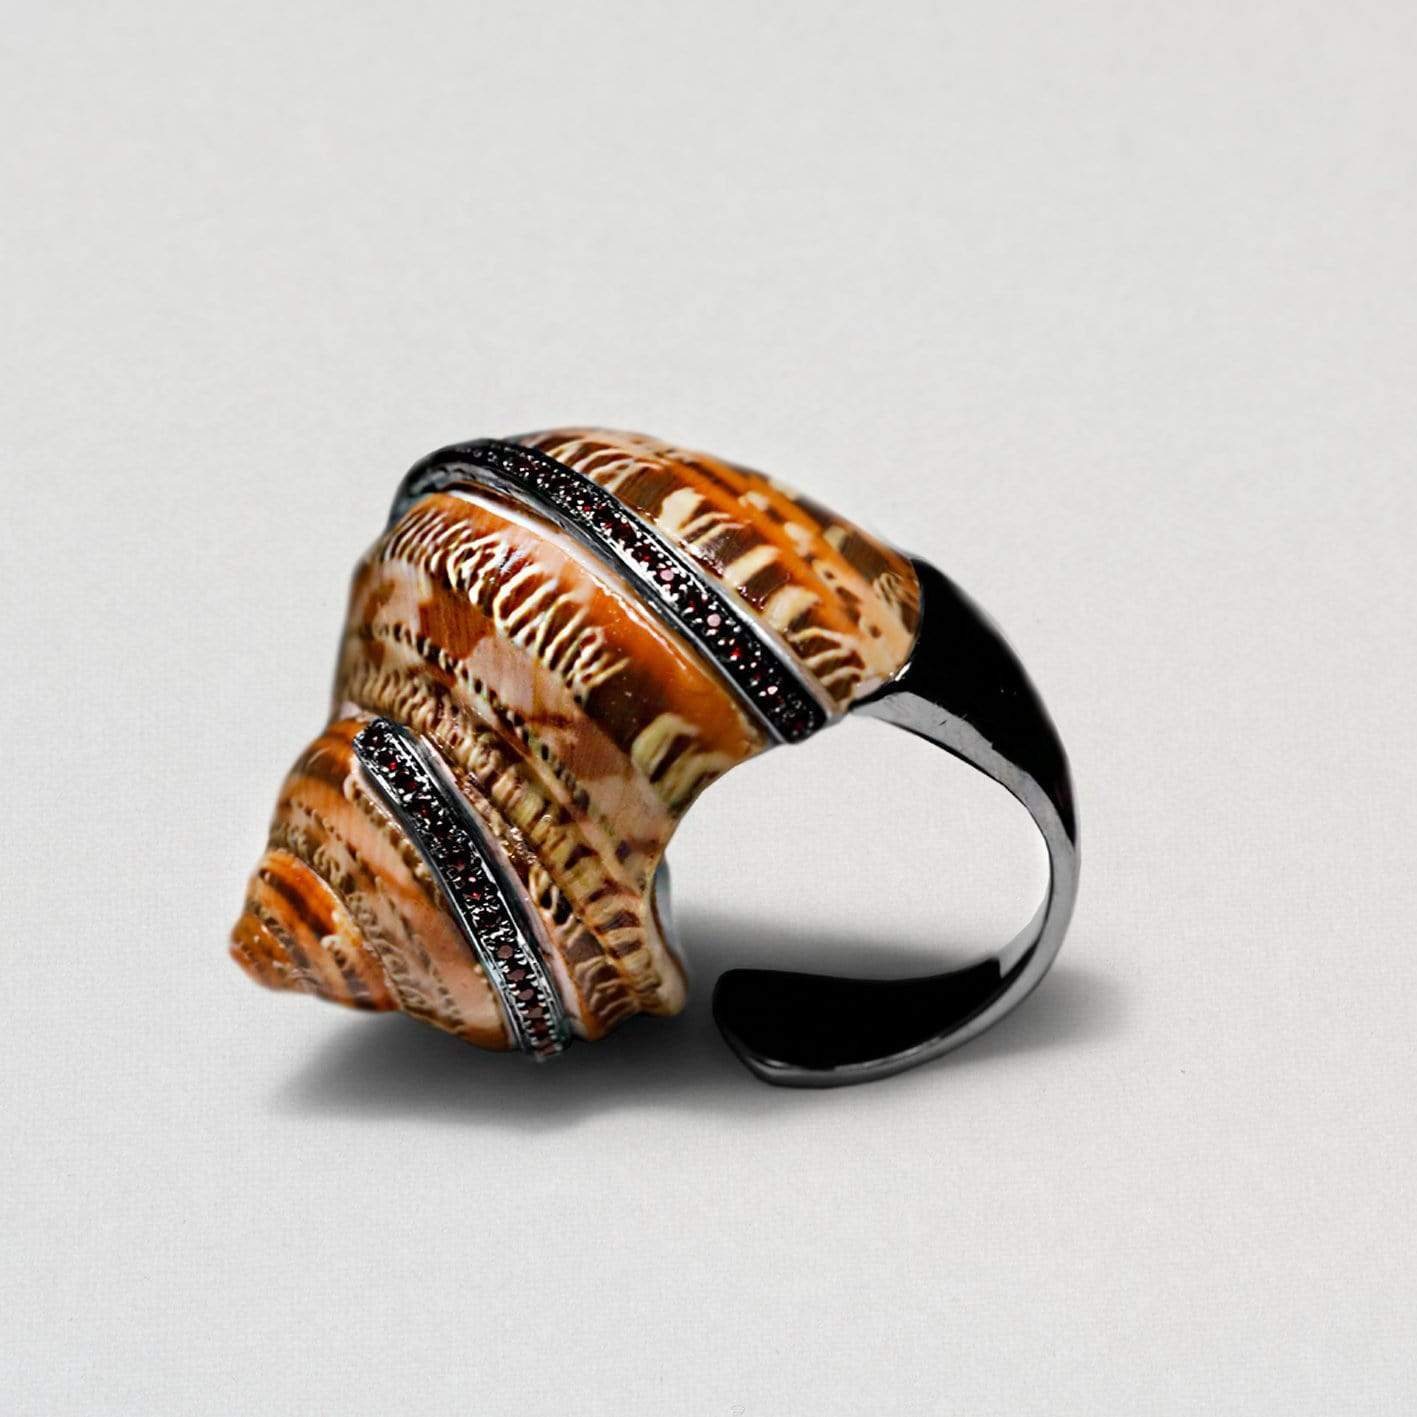 Cora Ring, Exclusive, Garnet, gray, Rhodium, spo-disabled, StoneColor:Orange, Style:Fantasy Ring